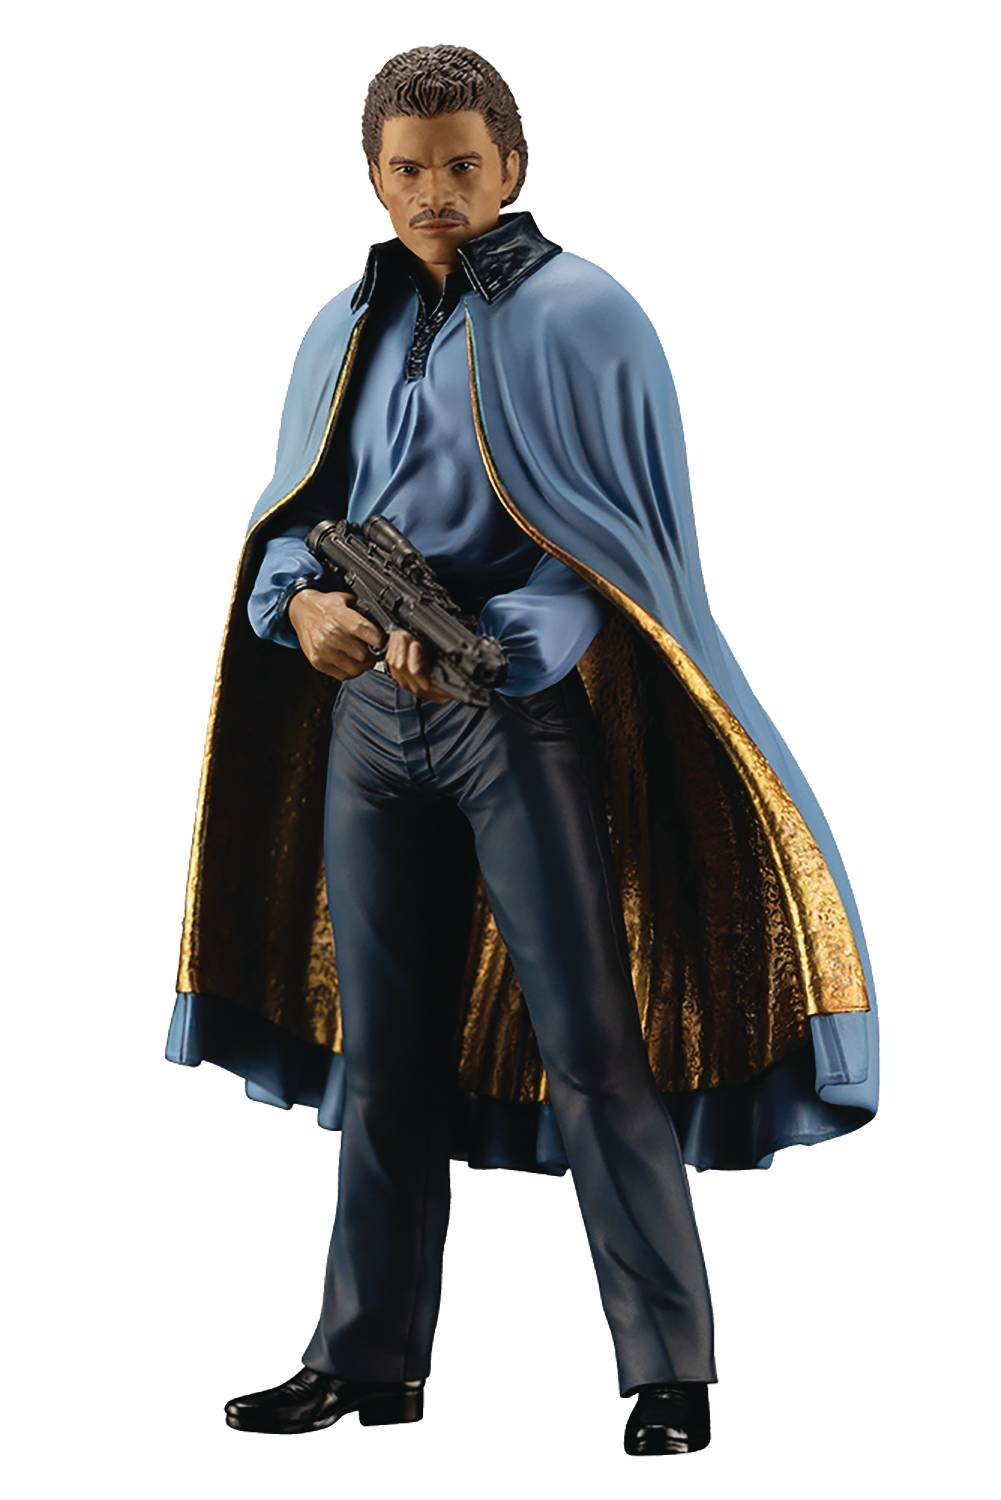 Star Wars Kotobukiya - Empire Strikes Back - Lando Calrissian ArtFX+ Statue